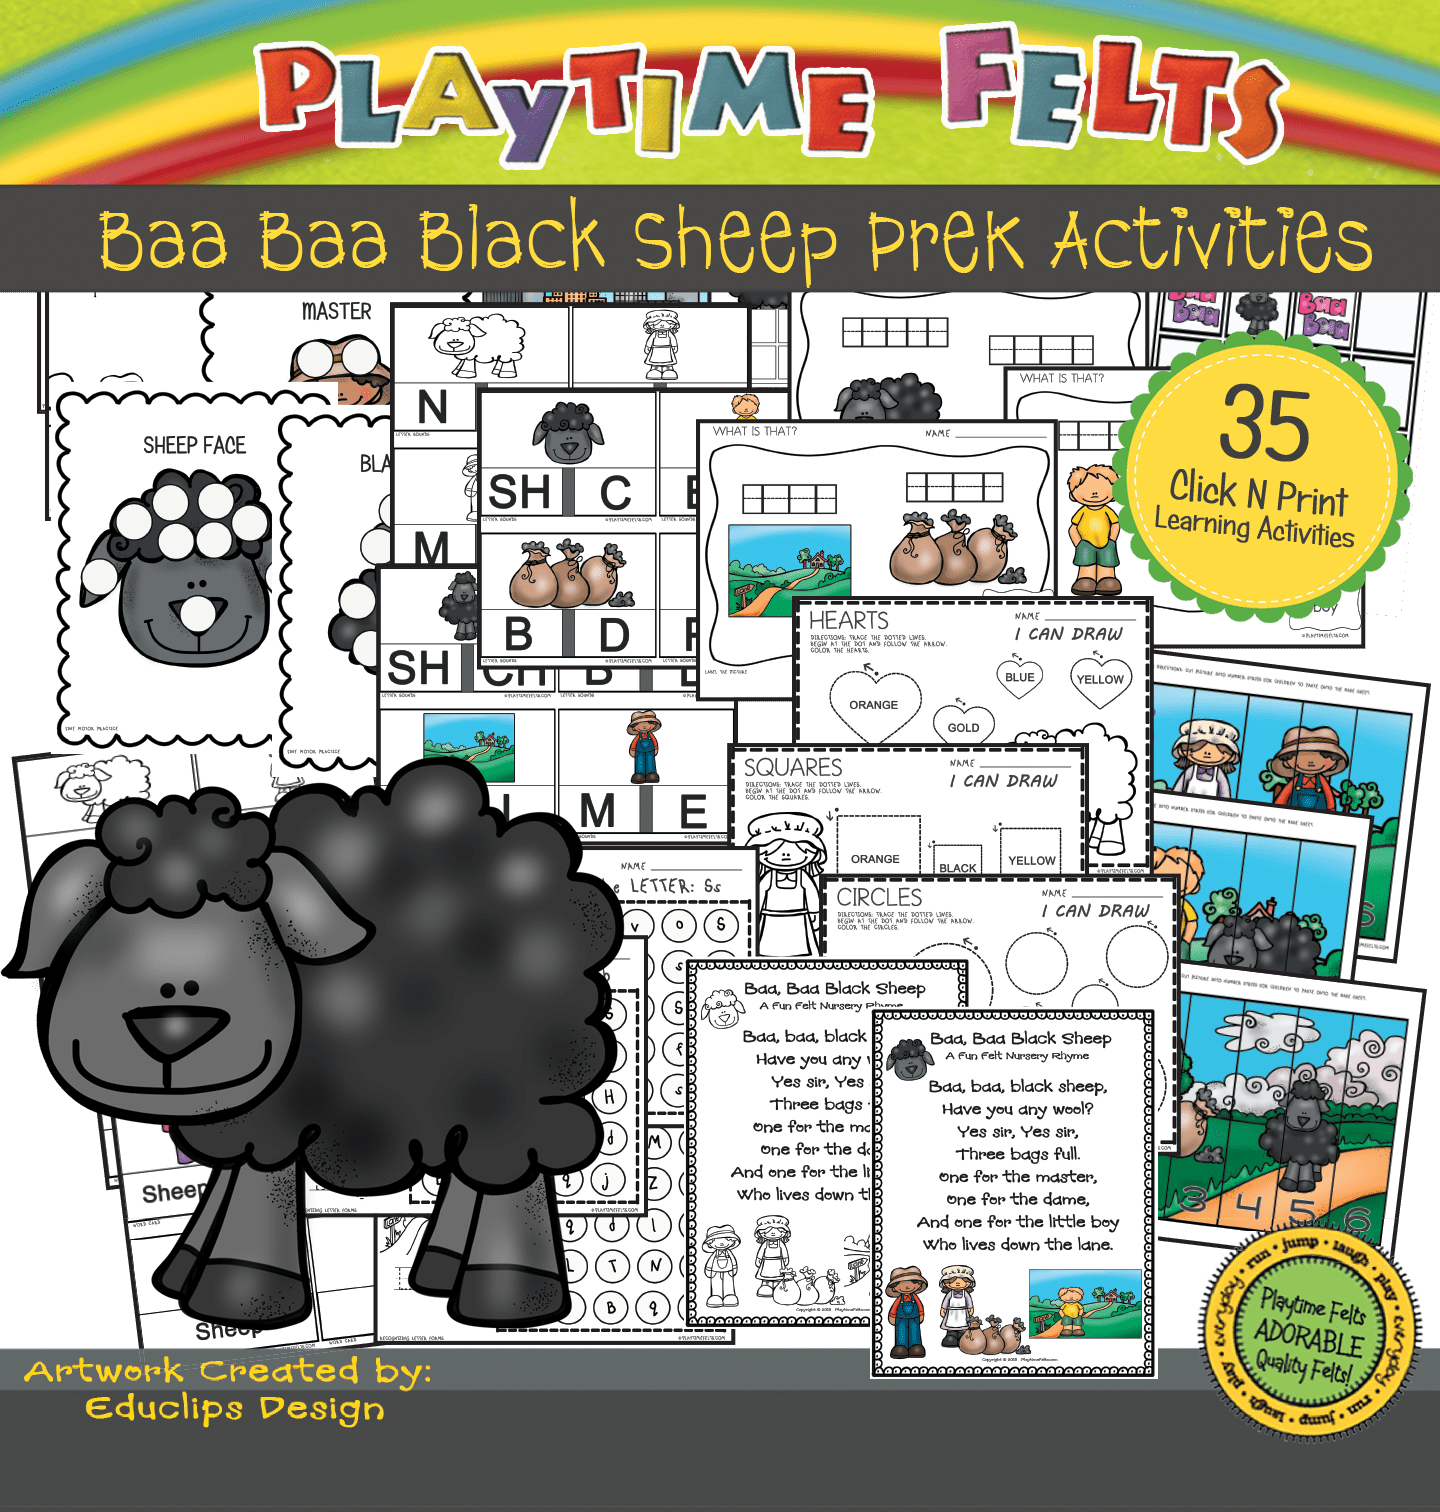 Baa Baa Black Sheep Activity Worksheets For Preschool By Playtime Felts